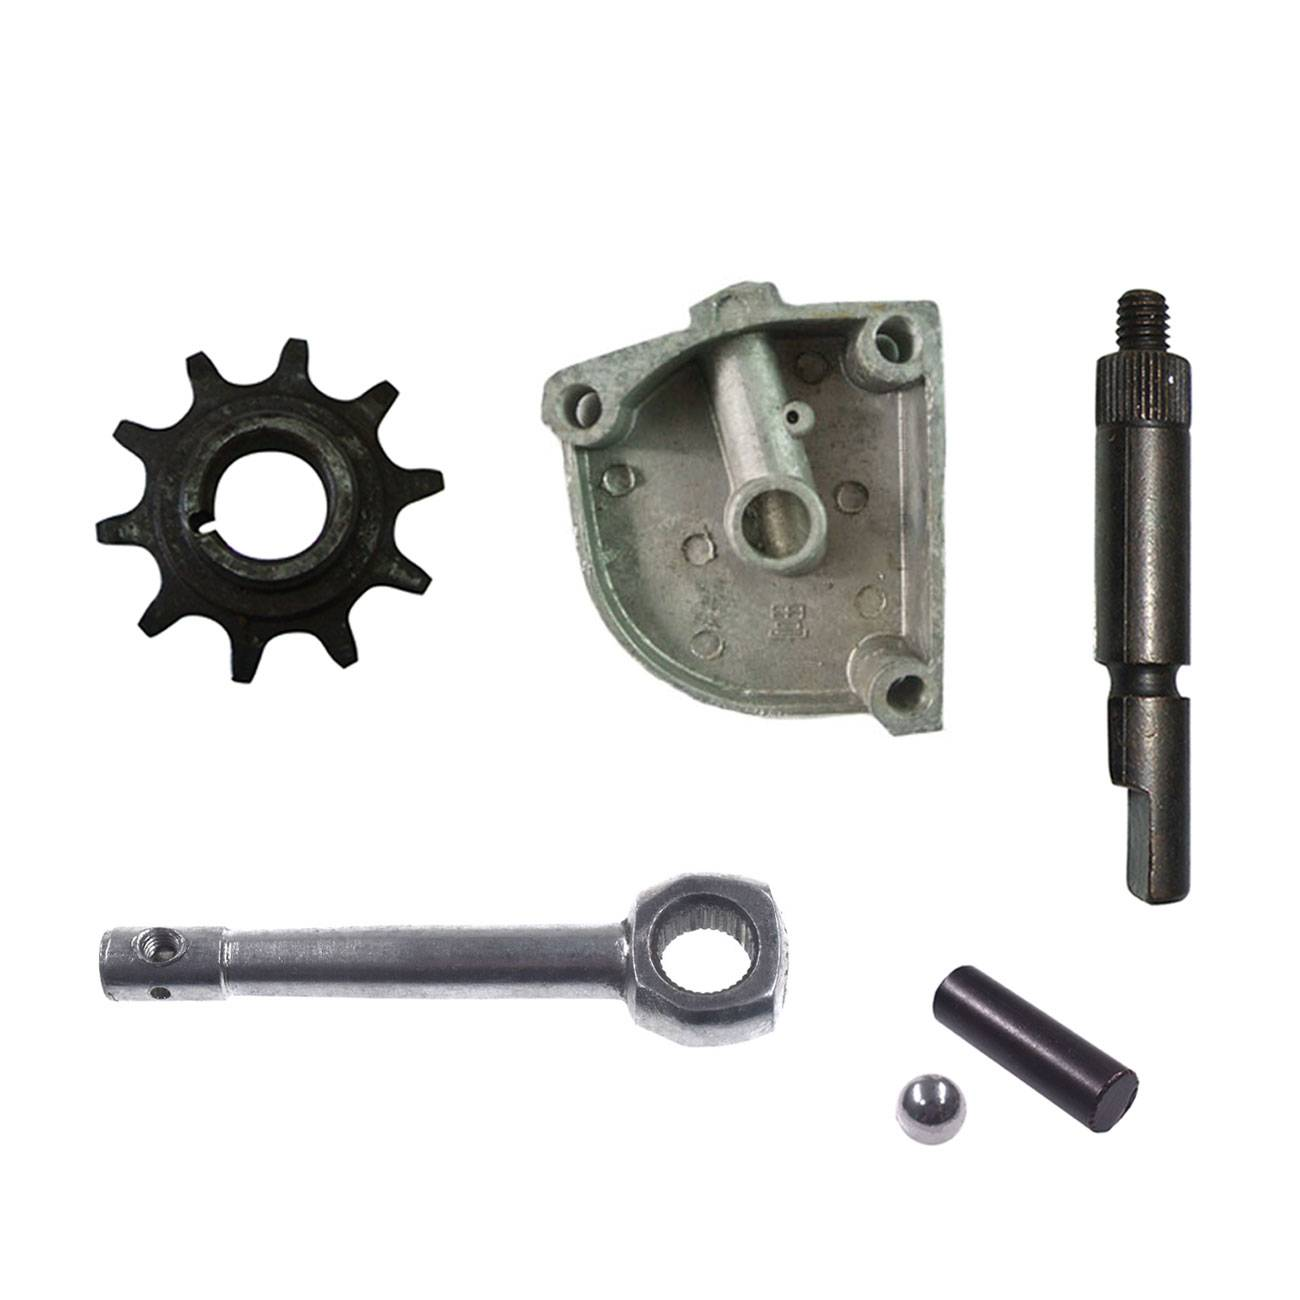 10Tooth Drive Sprocket 3 Holes Clutch Cover Fit 49cc 60cc 66cc 80cc Motorized Bicycle